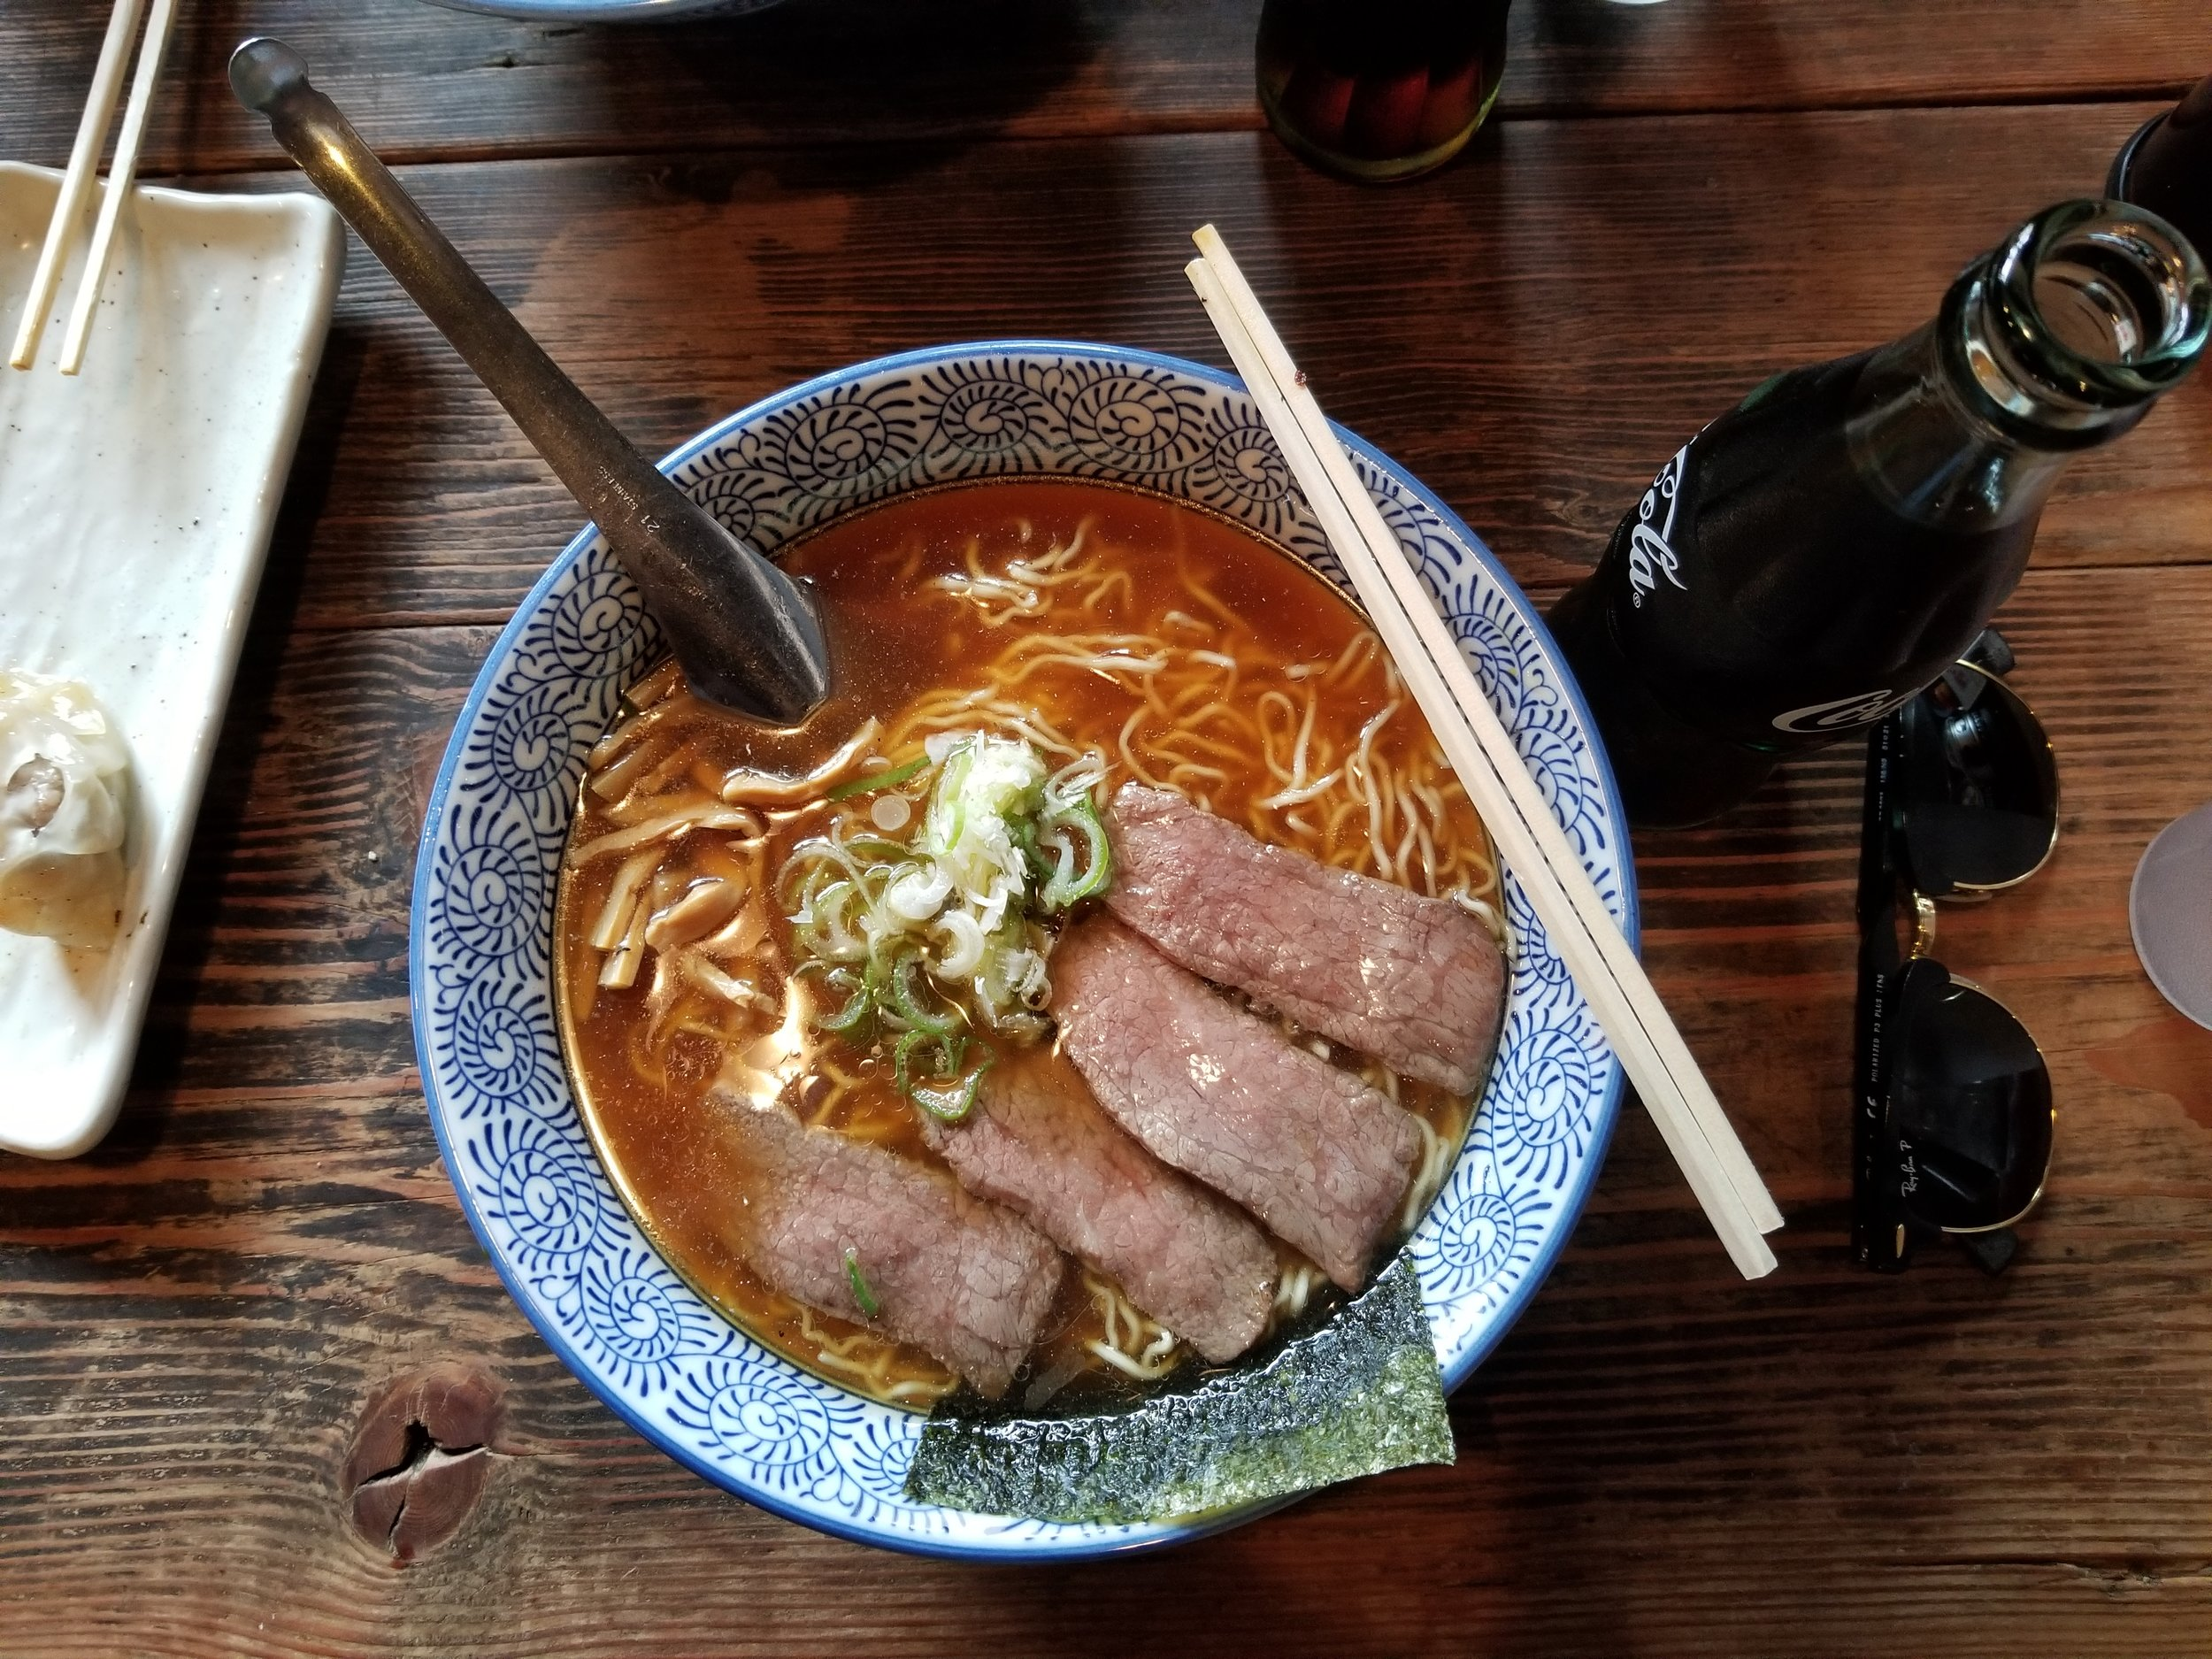 It was only fitting that we ended our trip with a quiet night out for Hida beef ramen. Kajibashi cooks are absolutely heavenly.